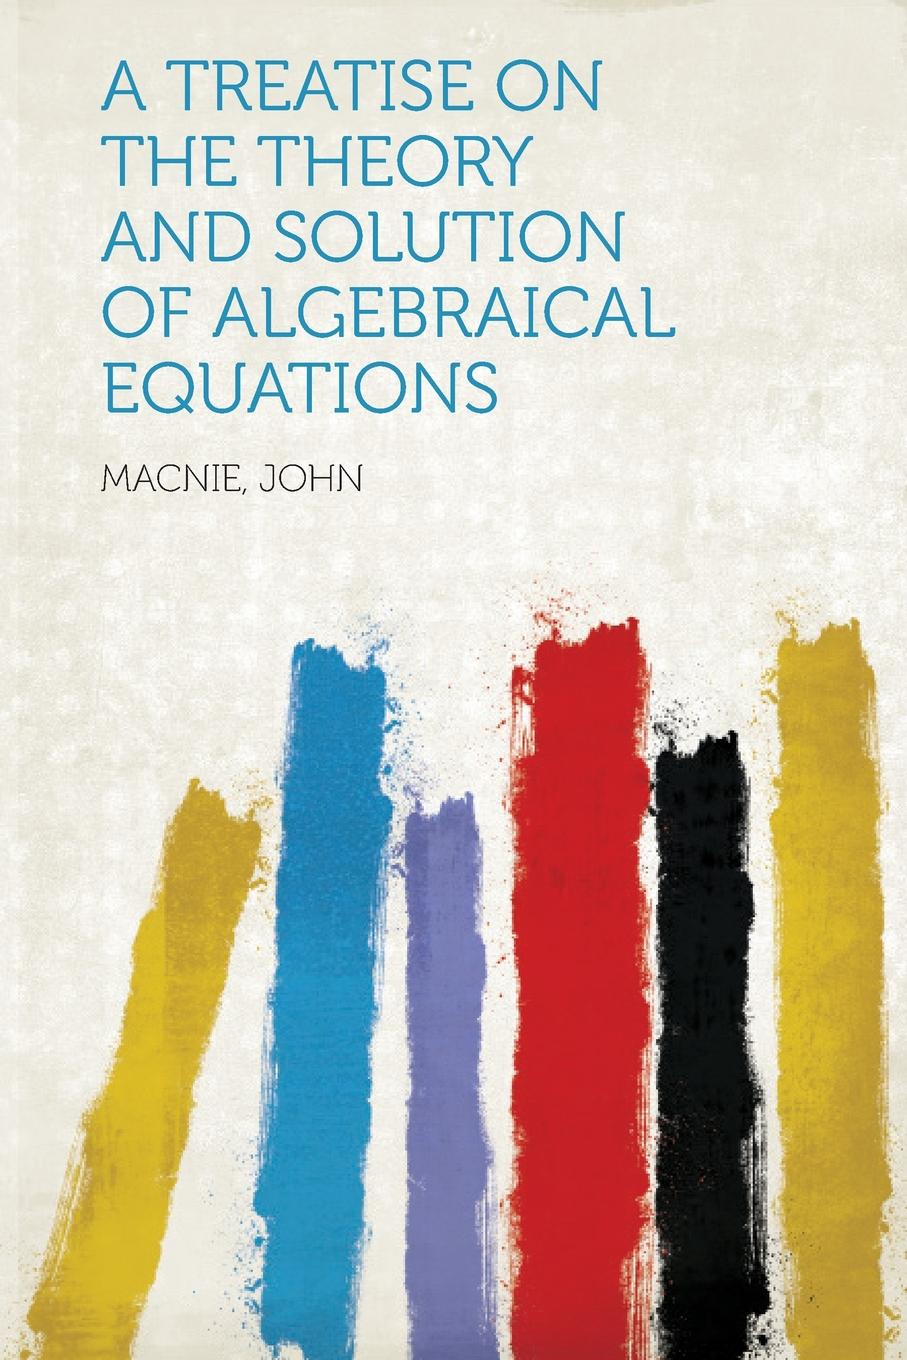 Macnie John A Treatise on the Theory and Solution of Algebraical Equations